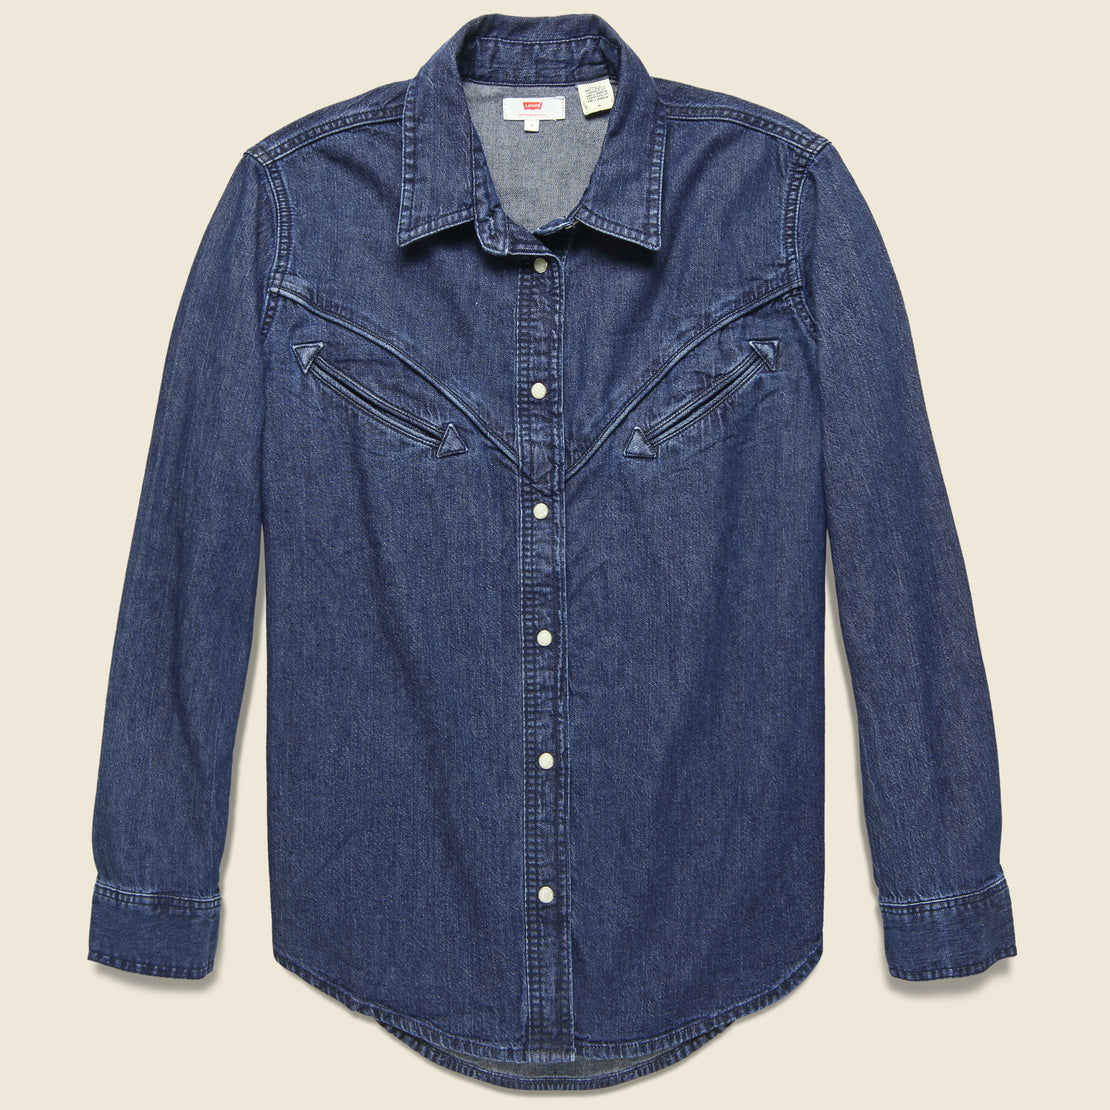 Levis Premium Dori Western Shirt - Doubt It